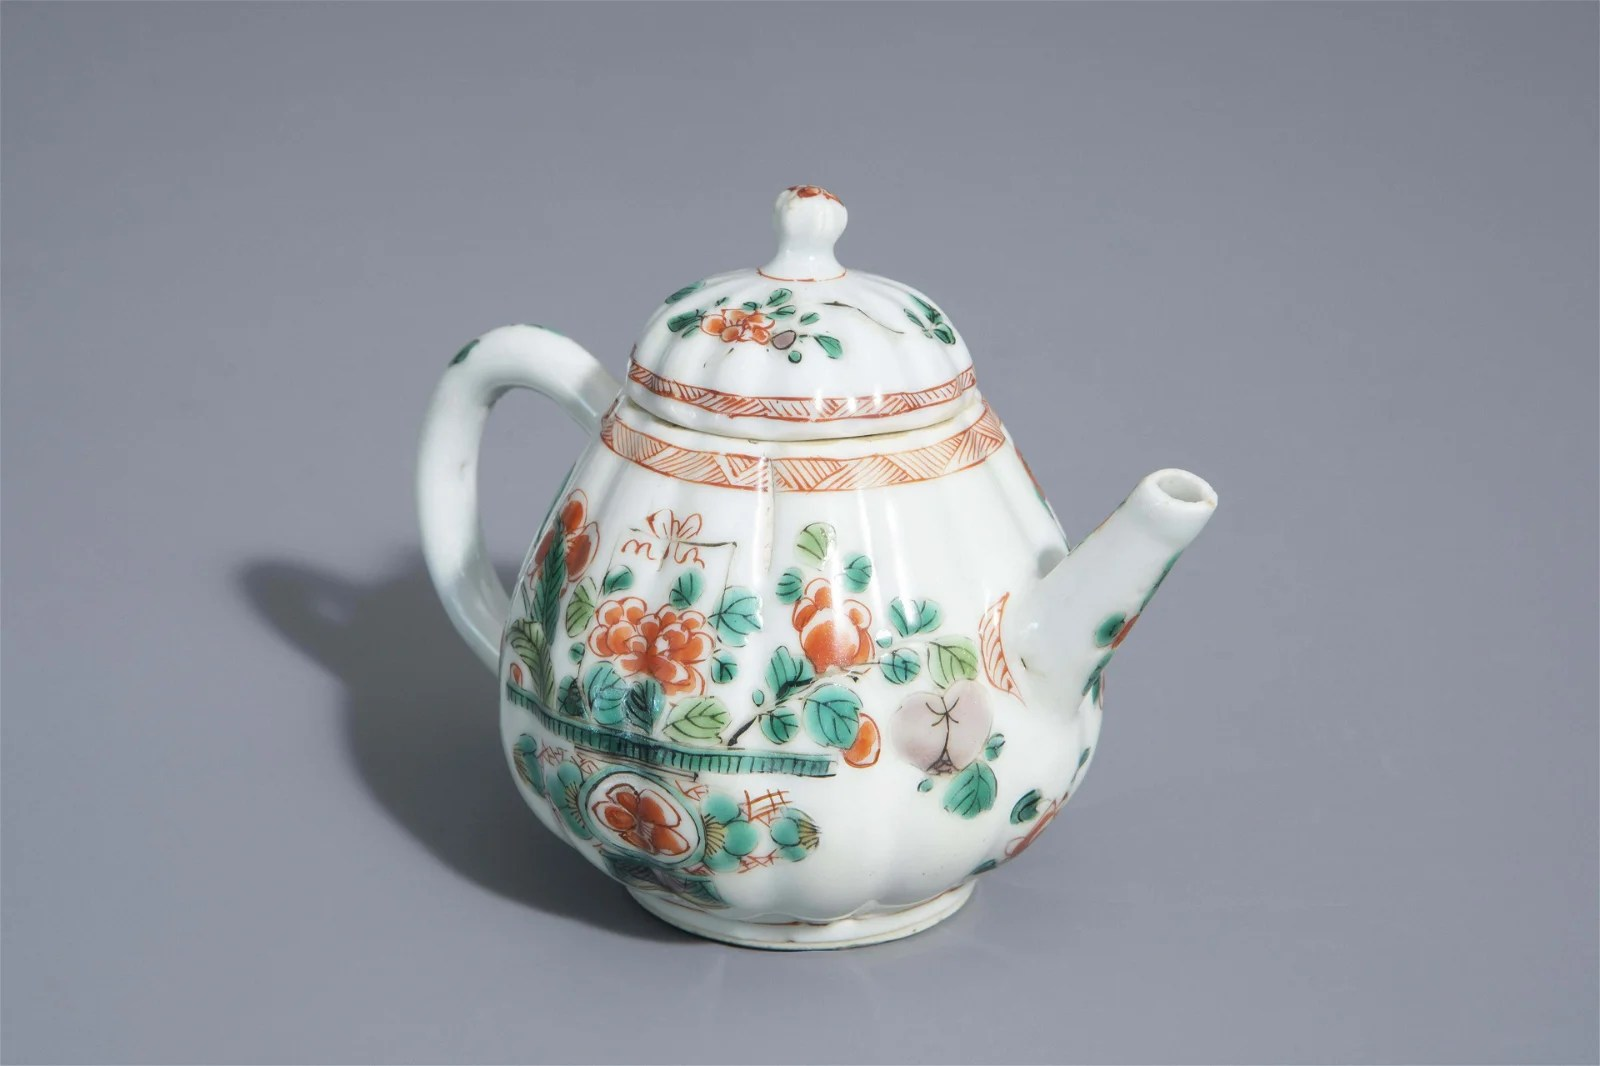 A Chinese famille verte teapot and cover with floral